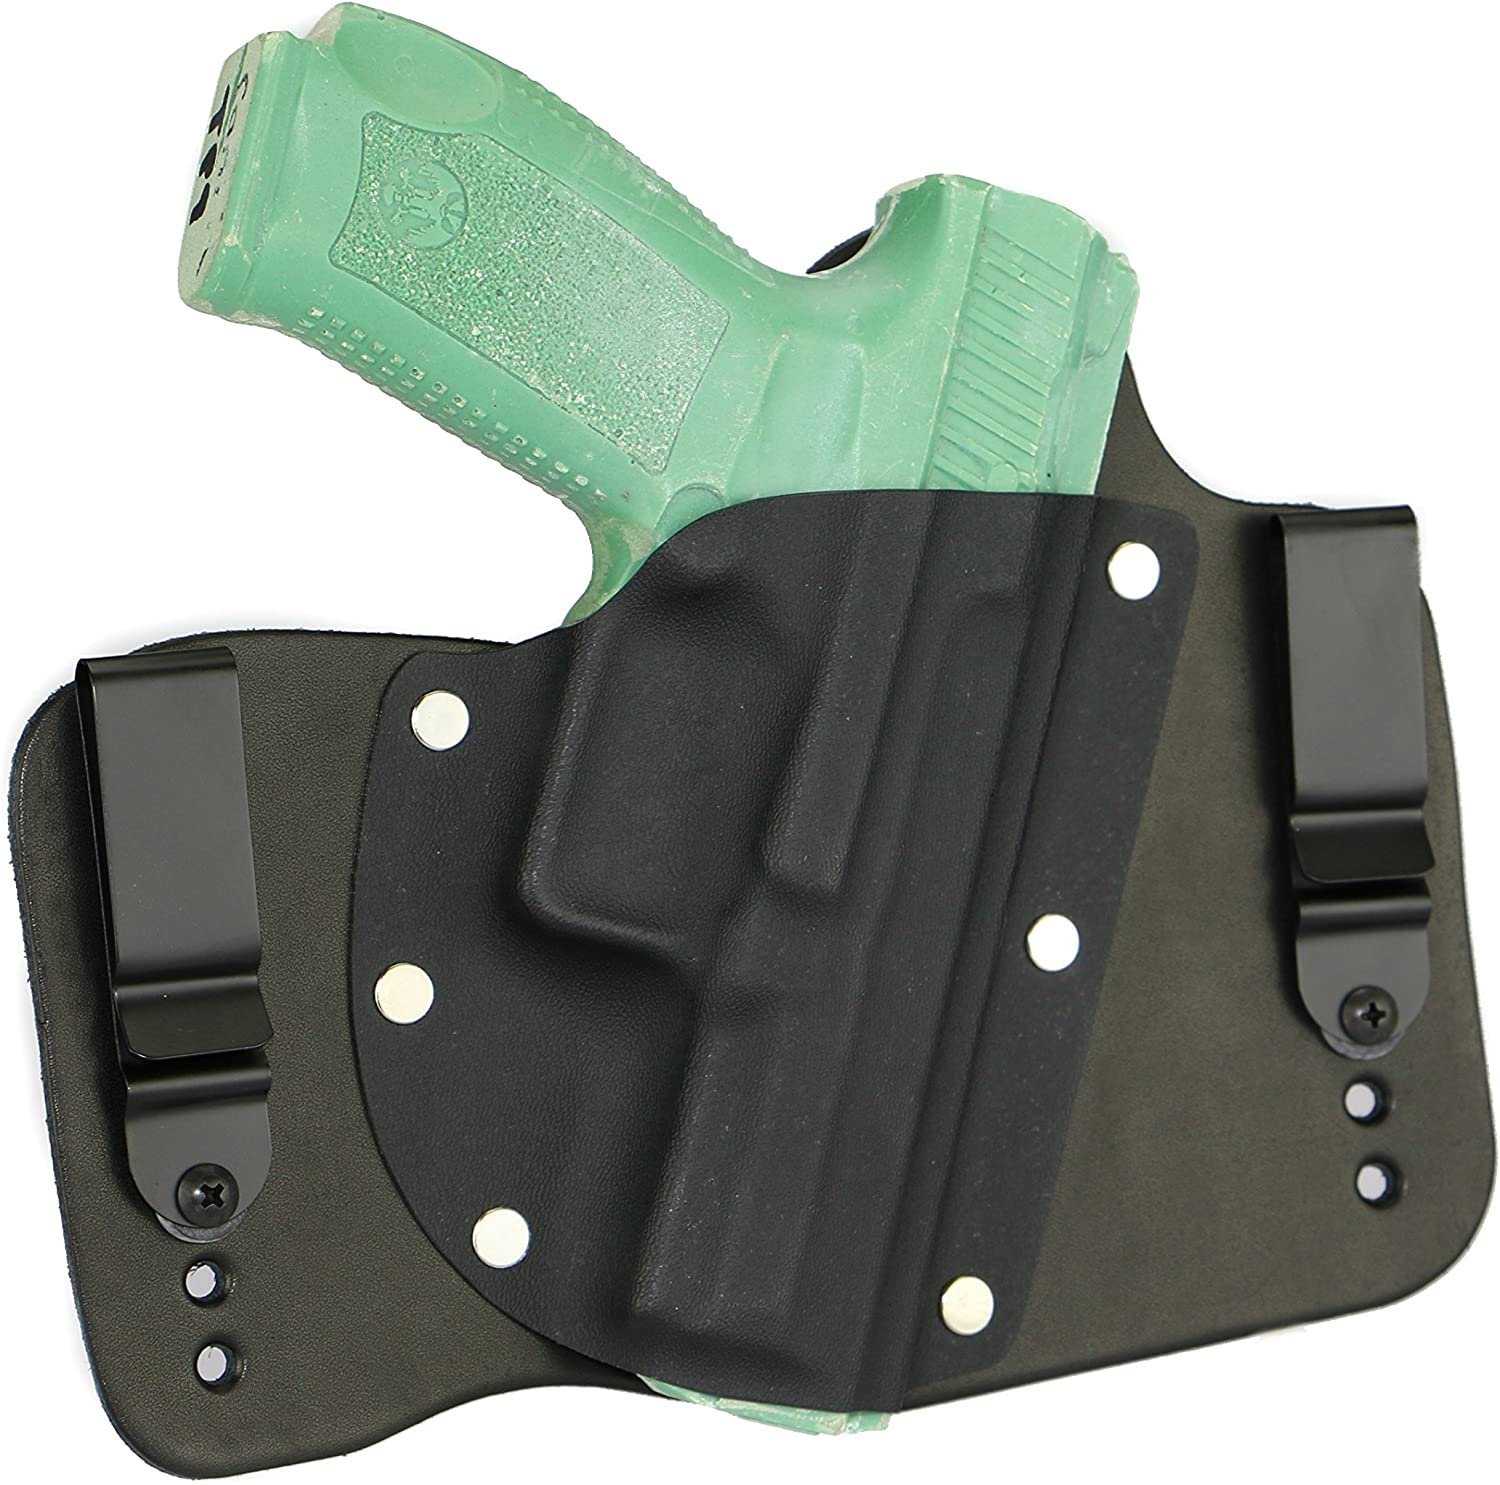 FoxX Holsters Canik TP9SA in Holster Waistband The Branded goods Max 88% OFF Tuckab Hybrid